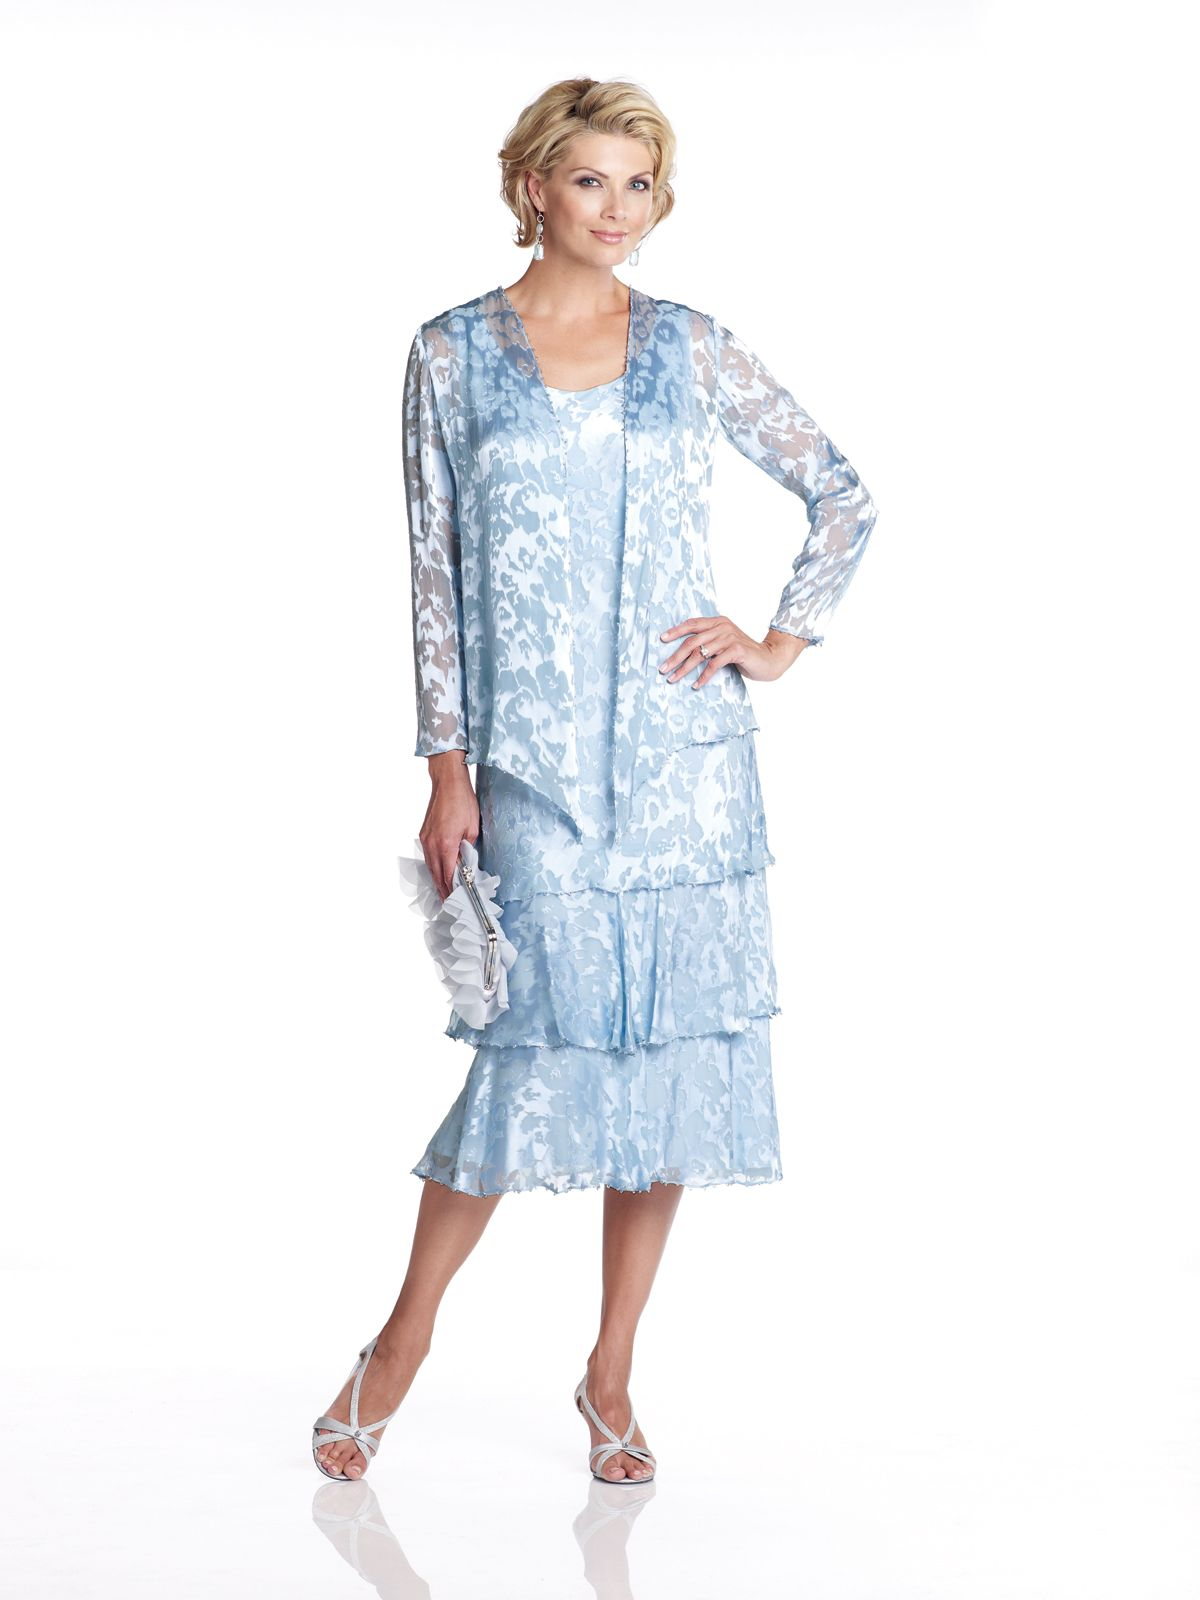 Cameron blake capri pale blue tiered dress and jacket sizes to